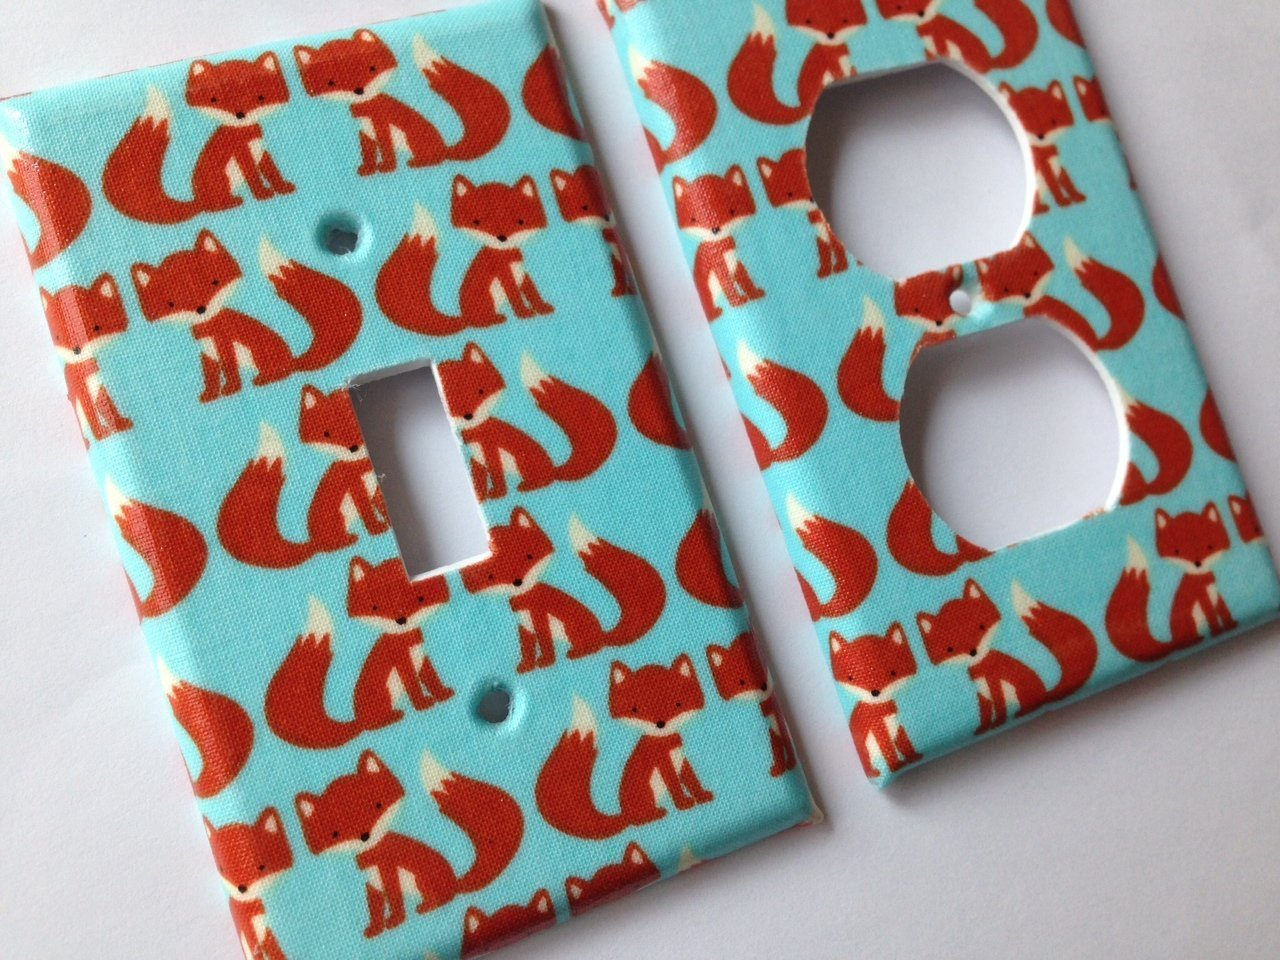 Fox Light Switch Cover - Various Sizes Offered